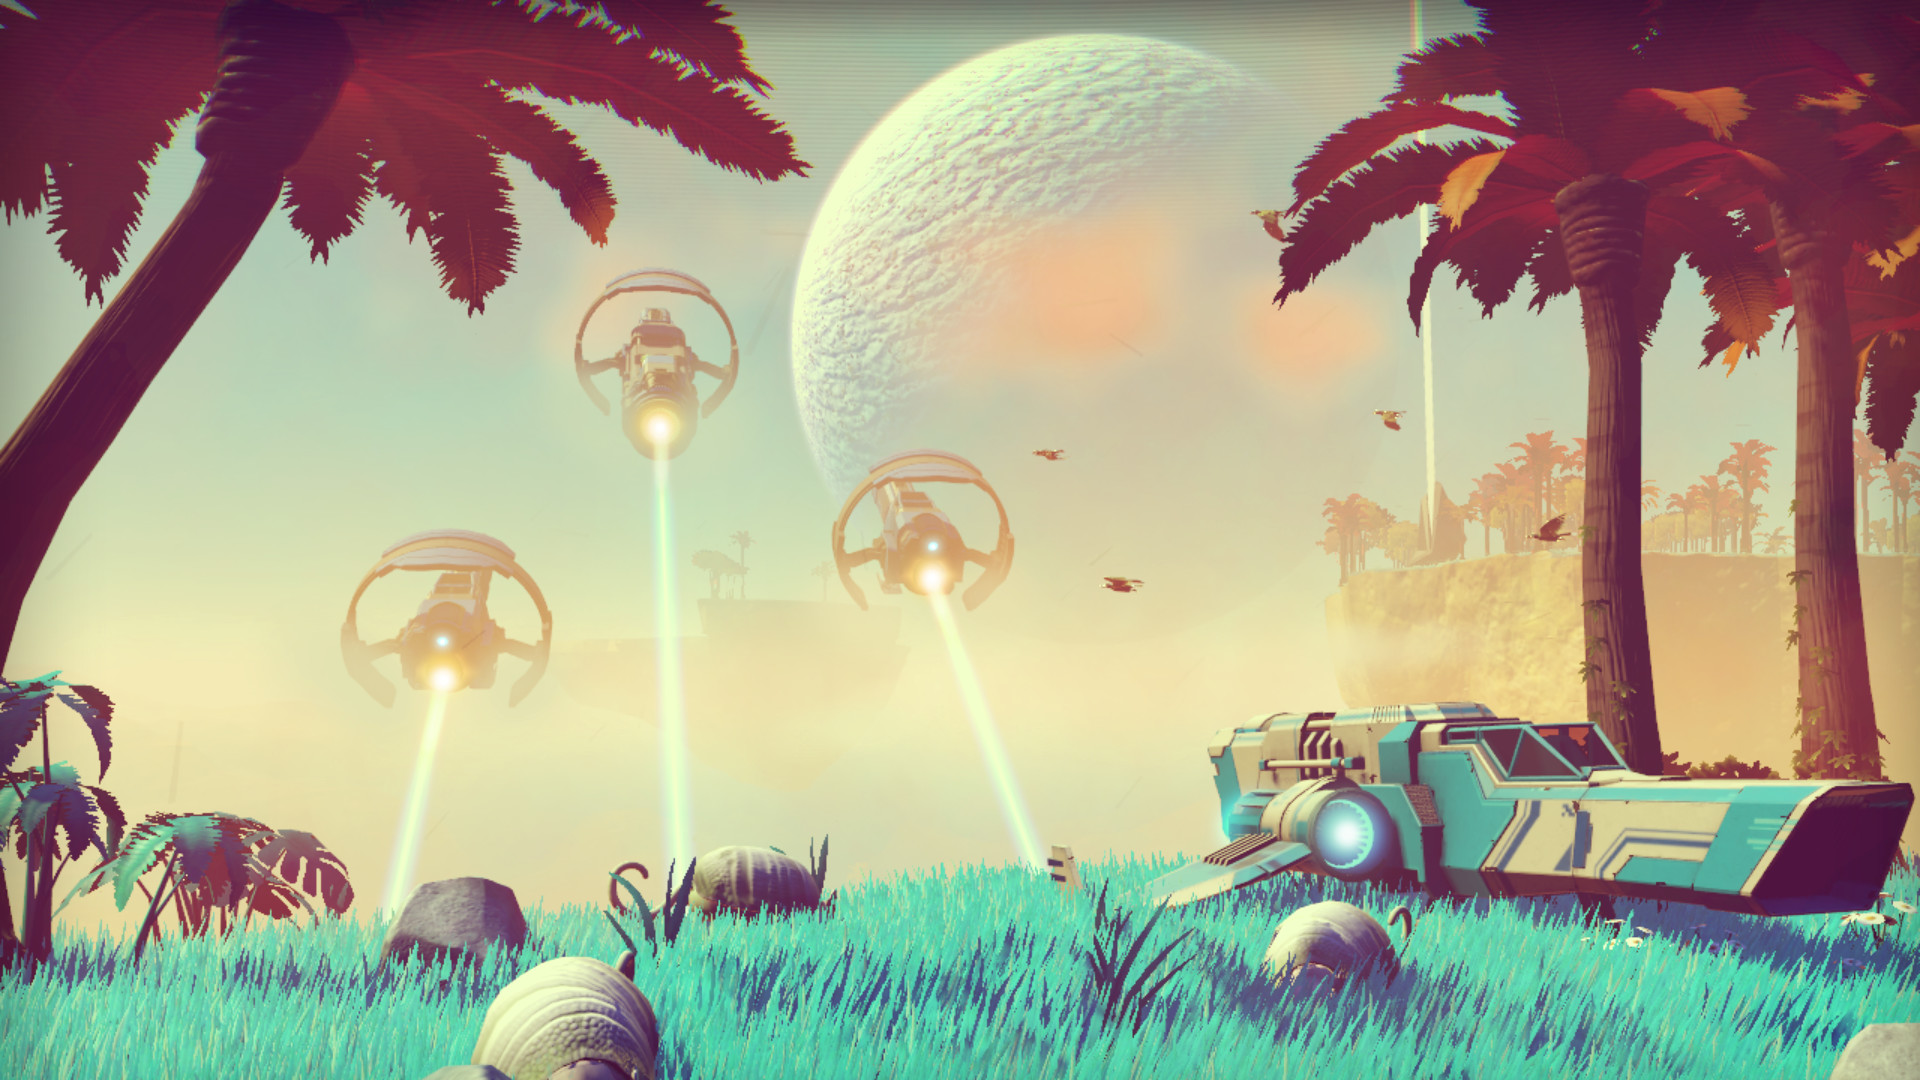 Anticipated space exploration game No Man's Sky lands on Steam